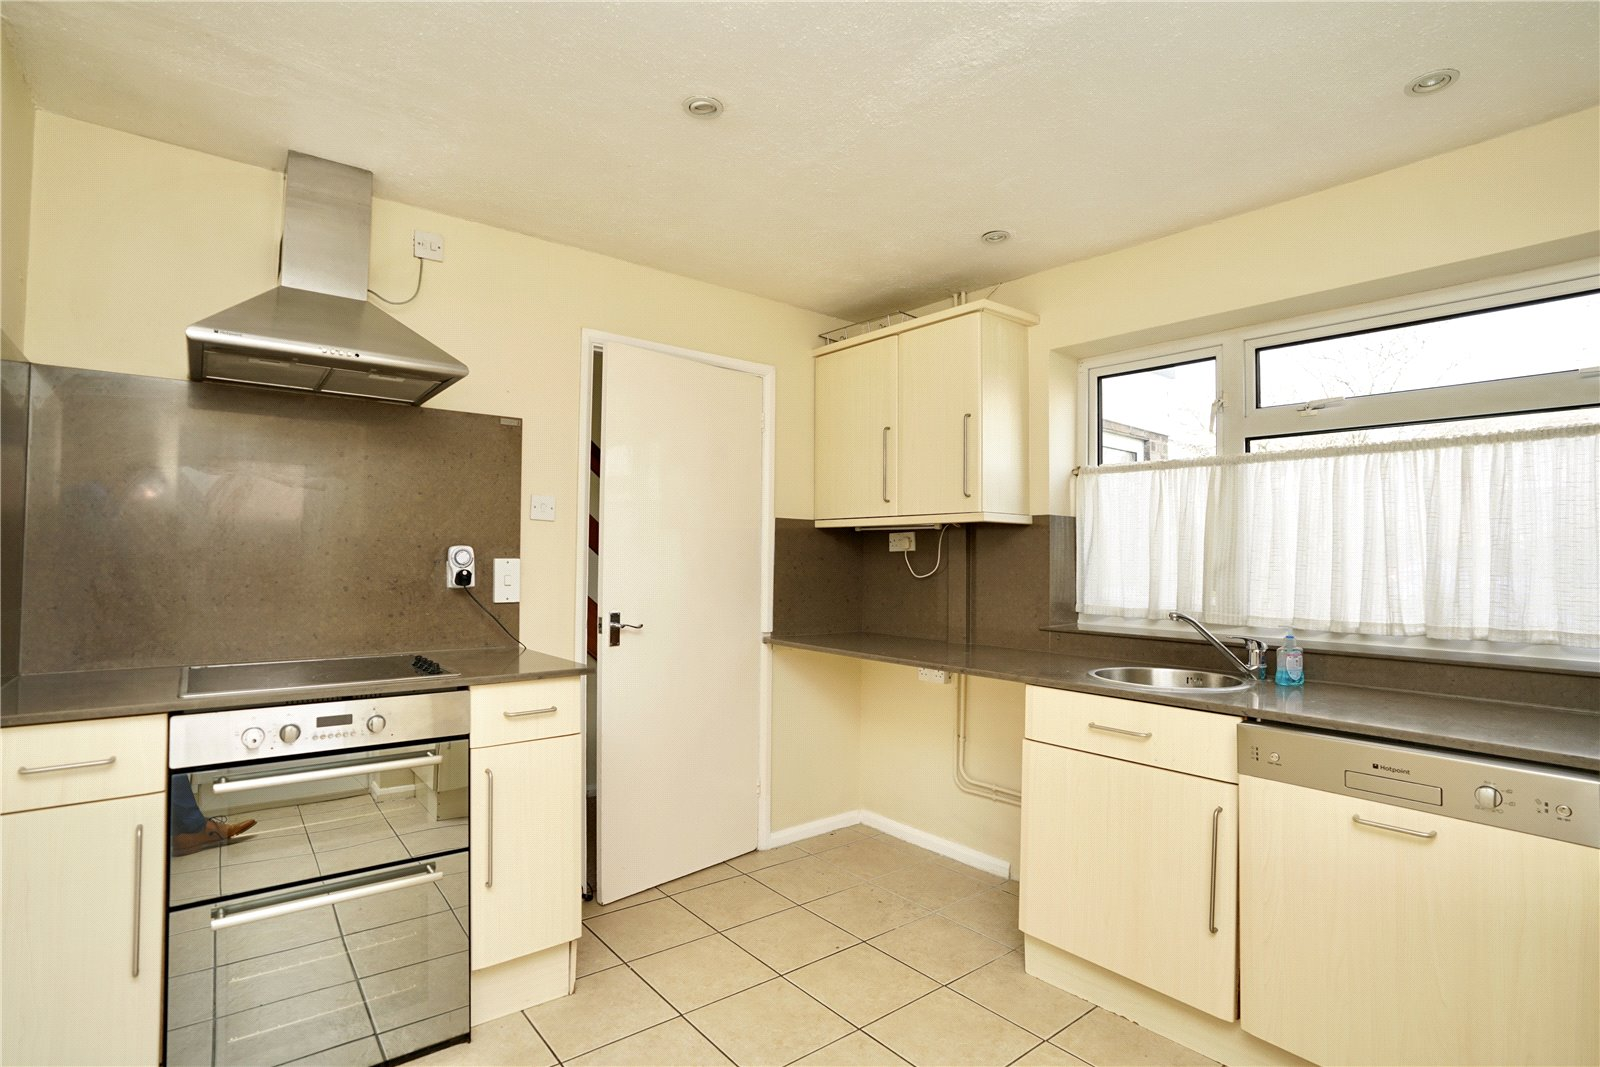 4 bed house for sale in Manor Close, Great Staughton 6